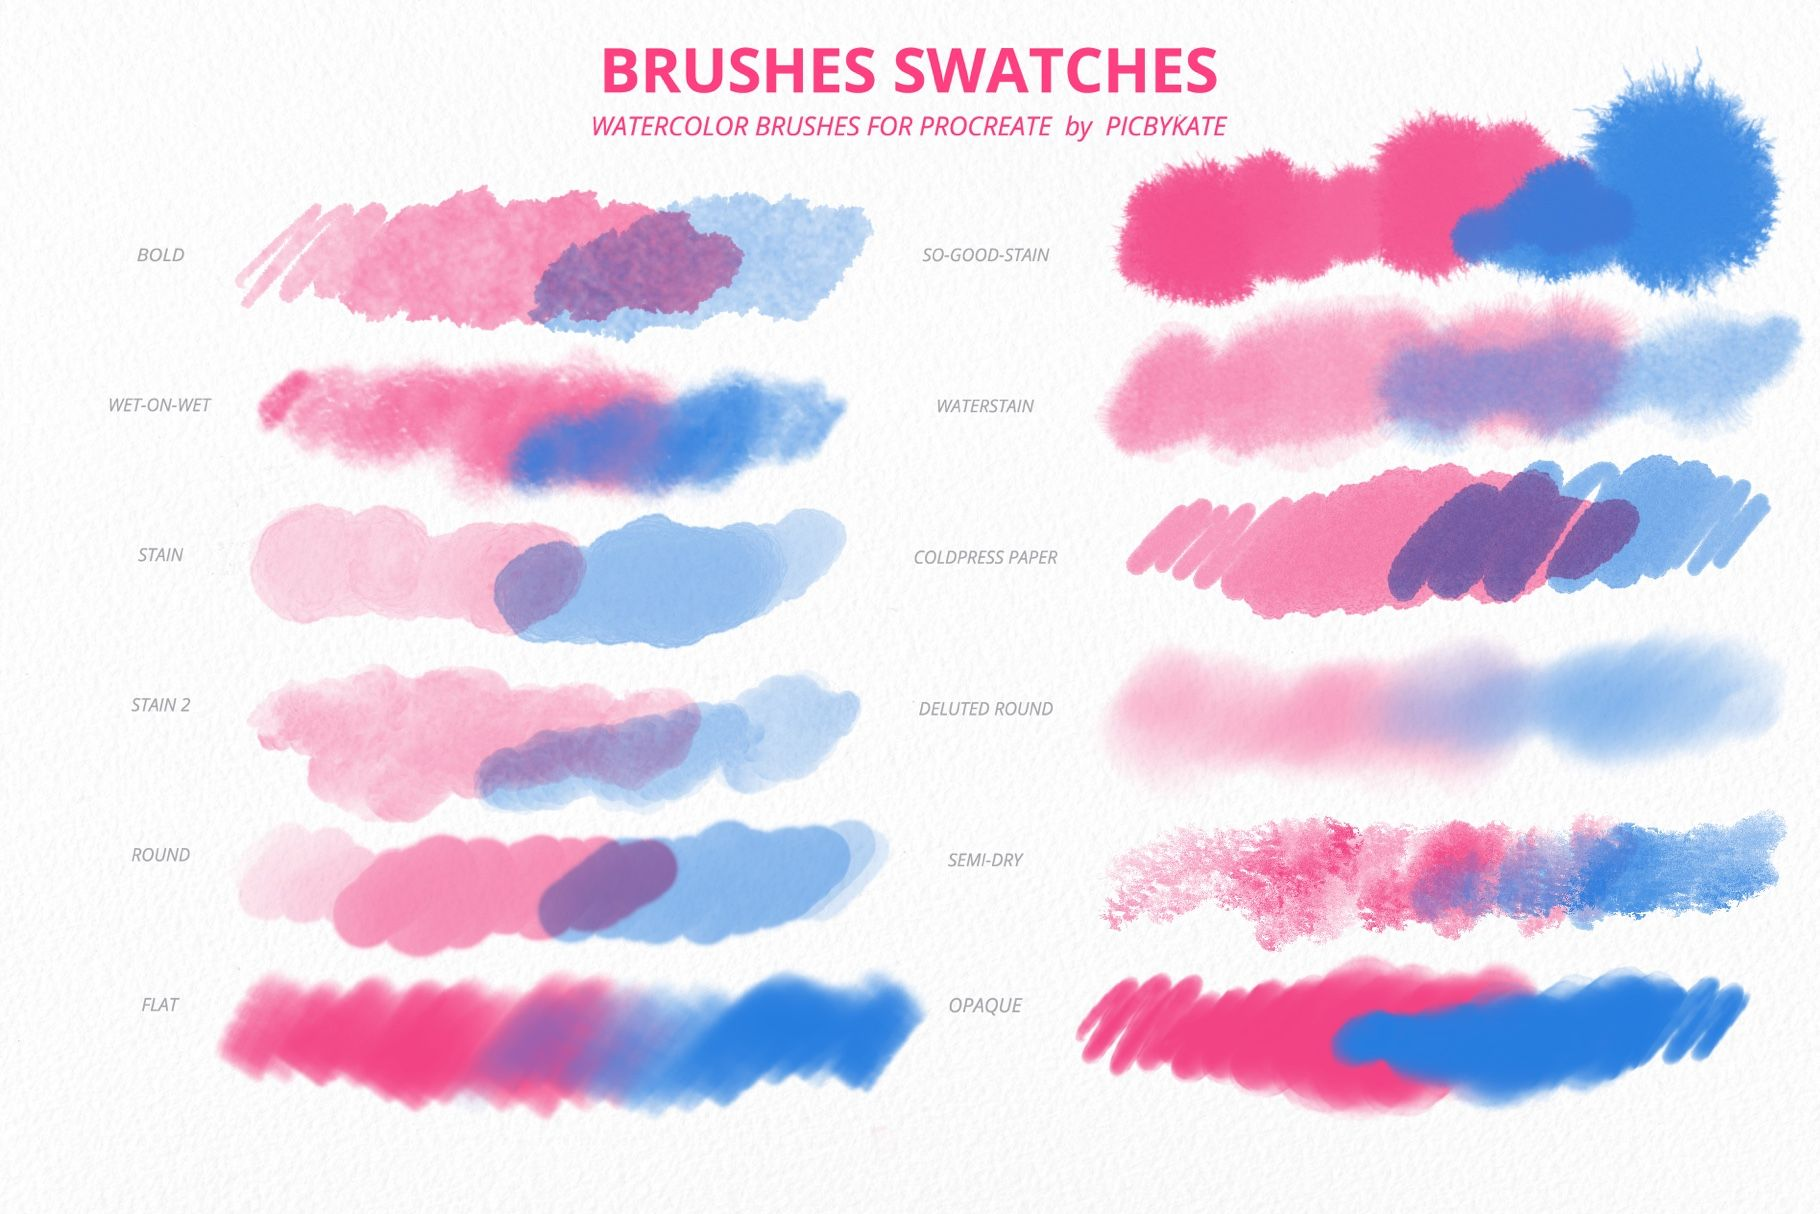 50 Procreate Watercolor Brushes Watercolor Brushes Hand Drawn